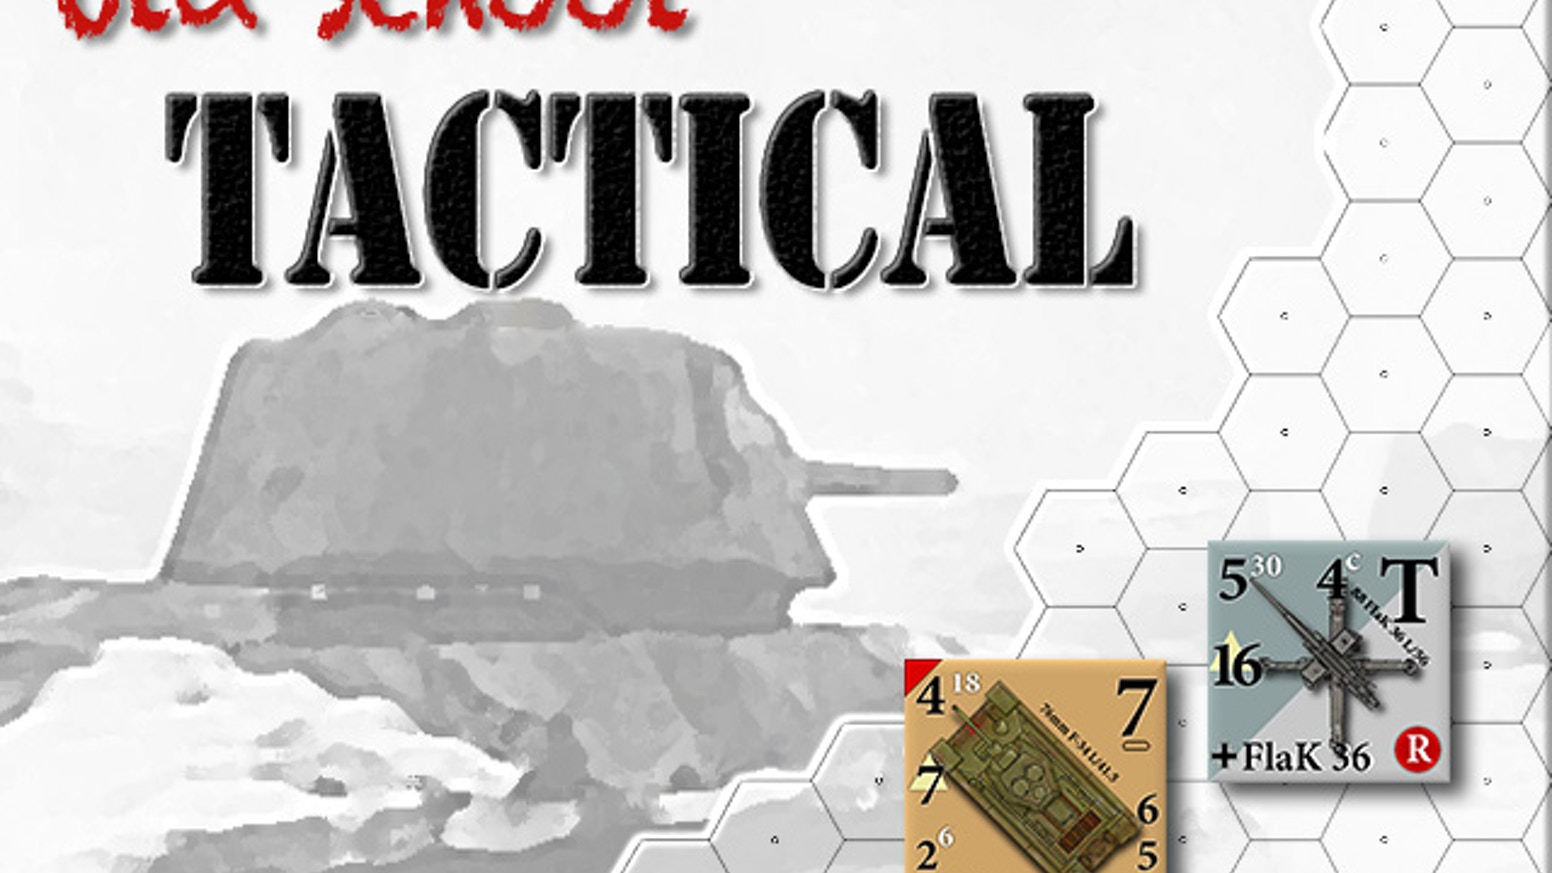 Fast and furious battles for 2 players. Tanks, planes, artillery, machine guns, and the soldiers to man them. All in 16 pages of rules.